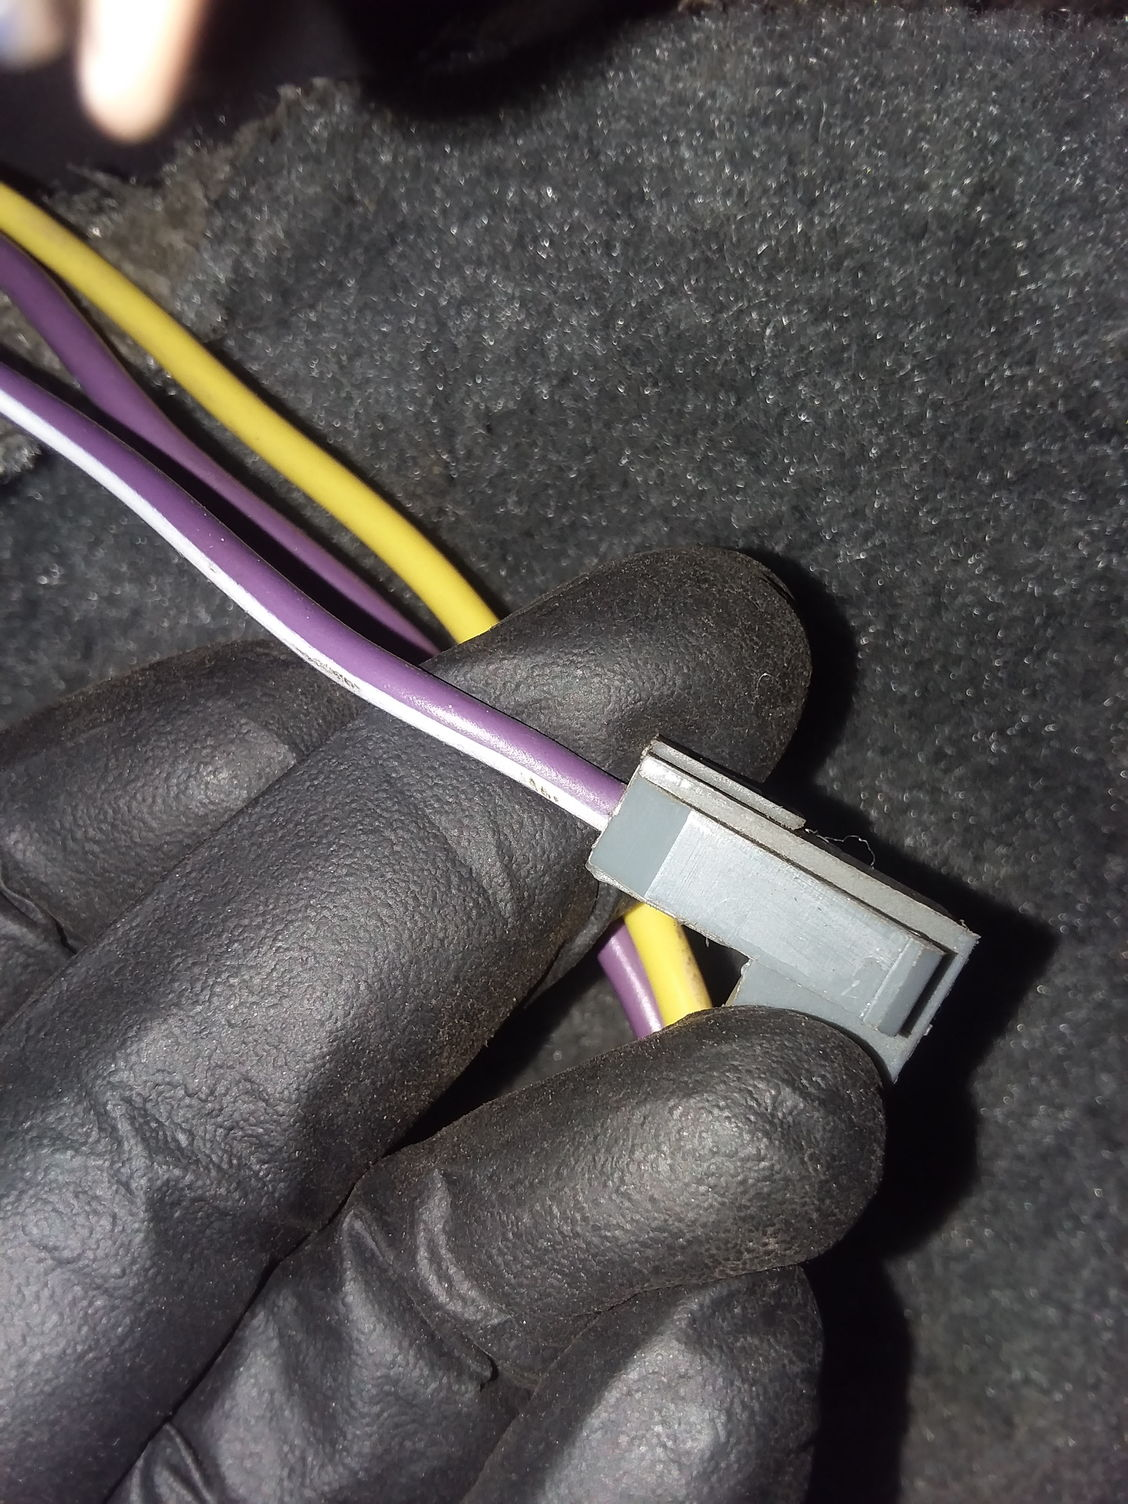 1986 Trans AM: Let\'s play guess that wire! - Third Generation F-Body ...